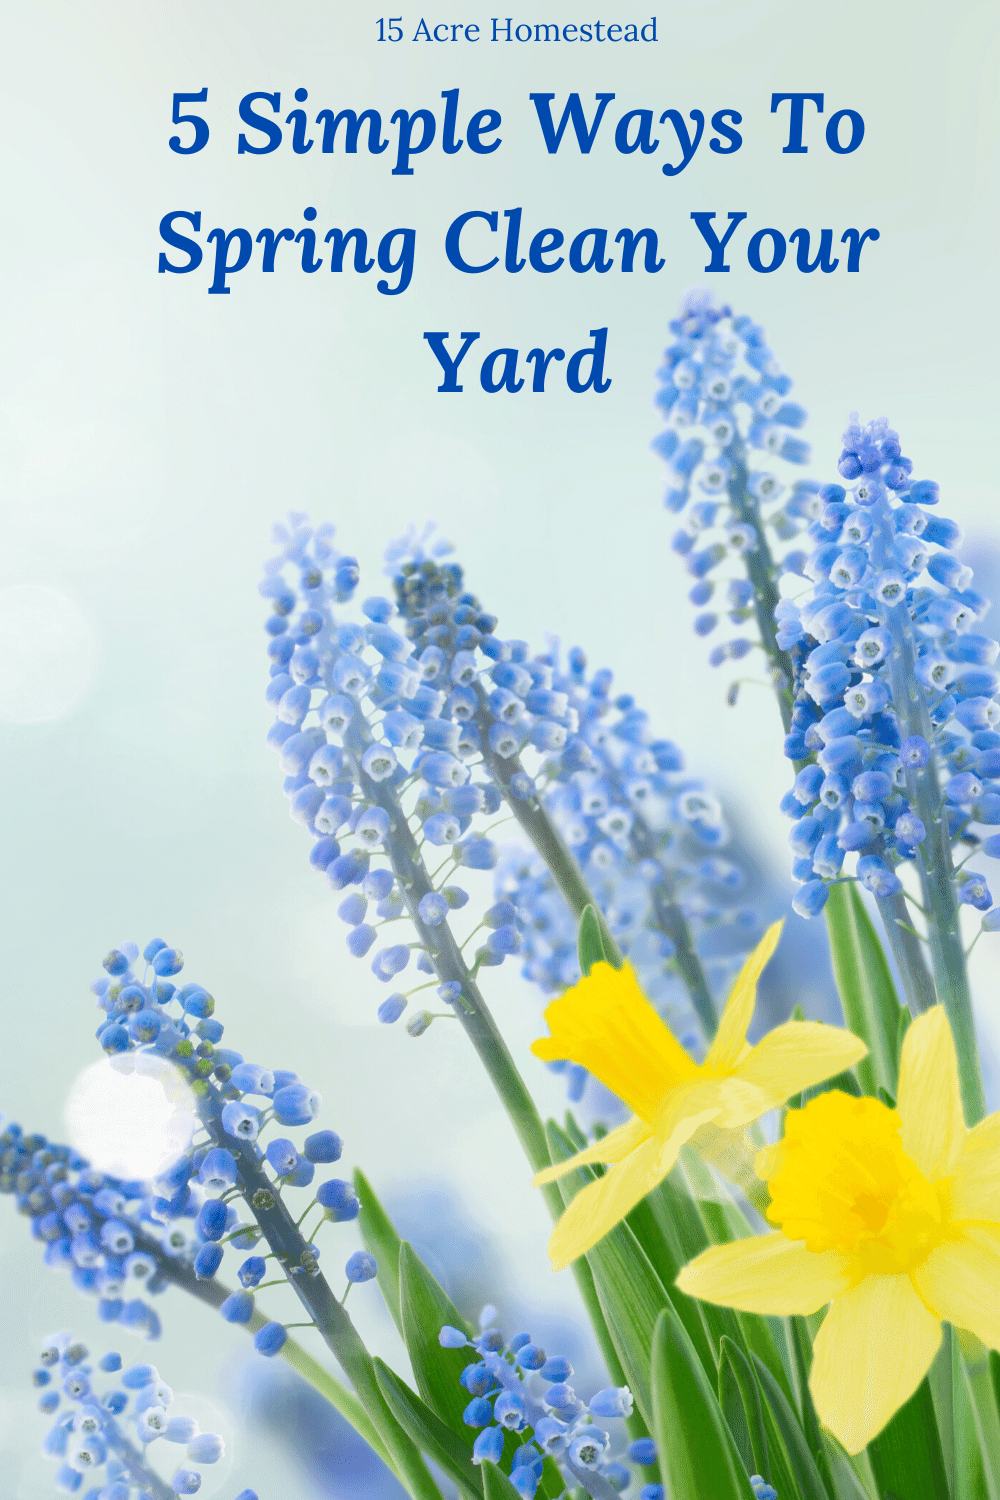 Try these 5 simple tips to spring clean your yard and get ready for the warmer weather on your homestead.